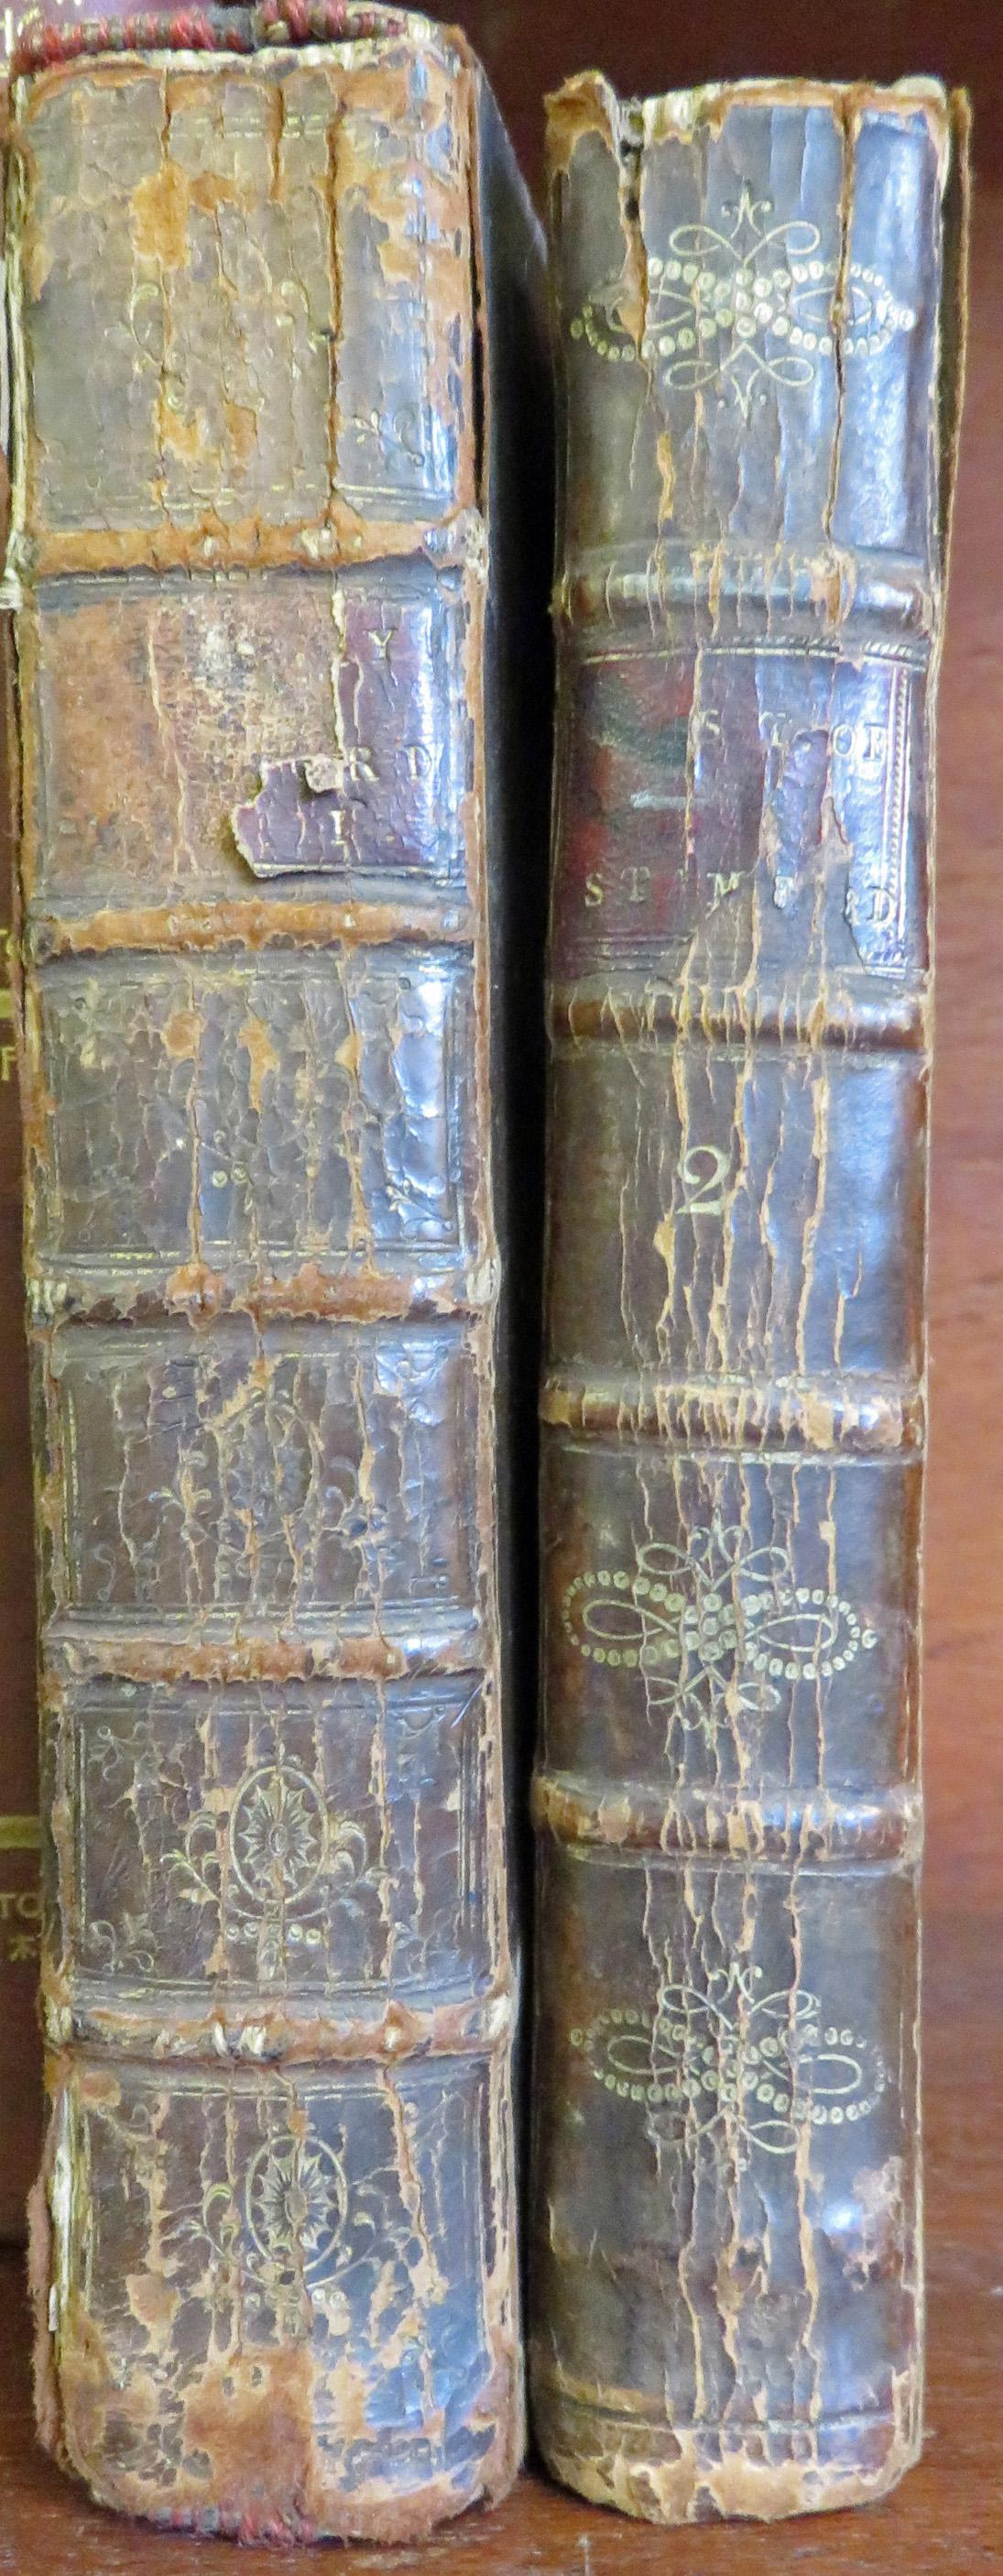 The Antiquities of Stamford and St Martin's, Compiled Chiefly From the Annals of the Rev Francis Peck, With Notes; to Which is Added Their Present State Including Burghley In Two Volumes Complete